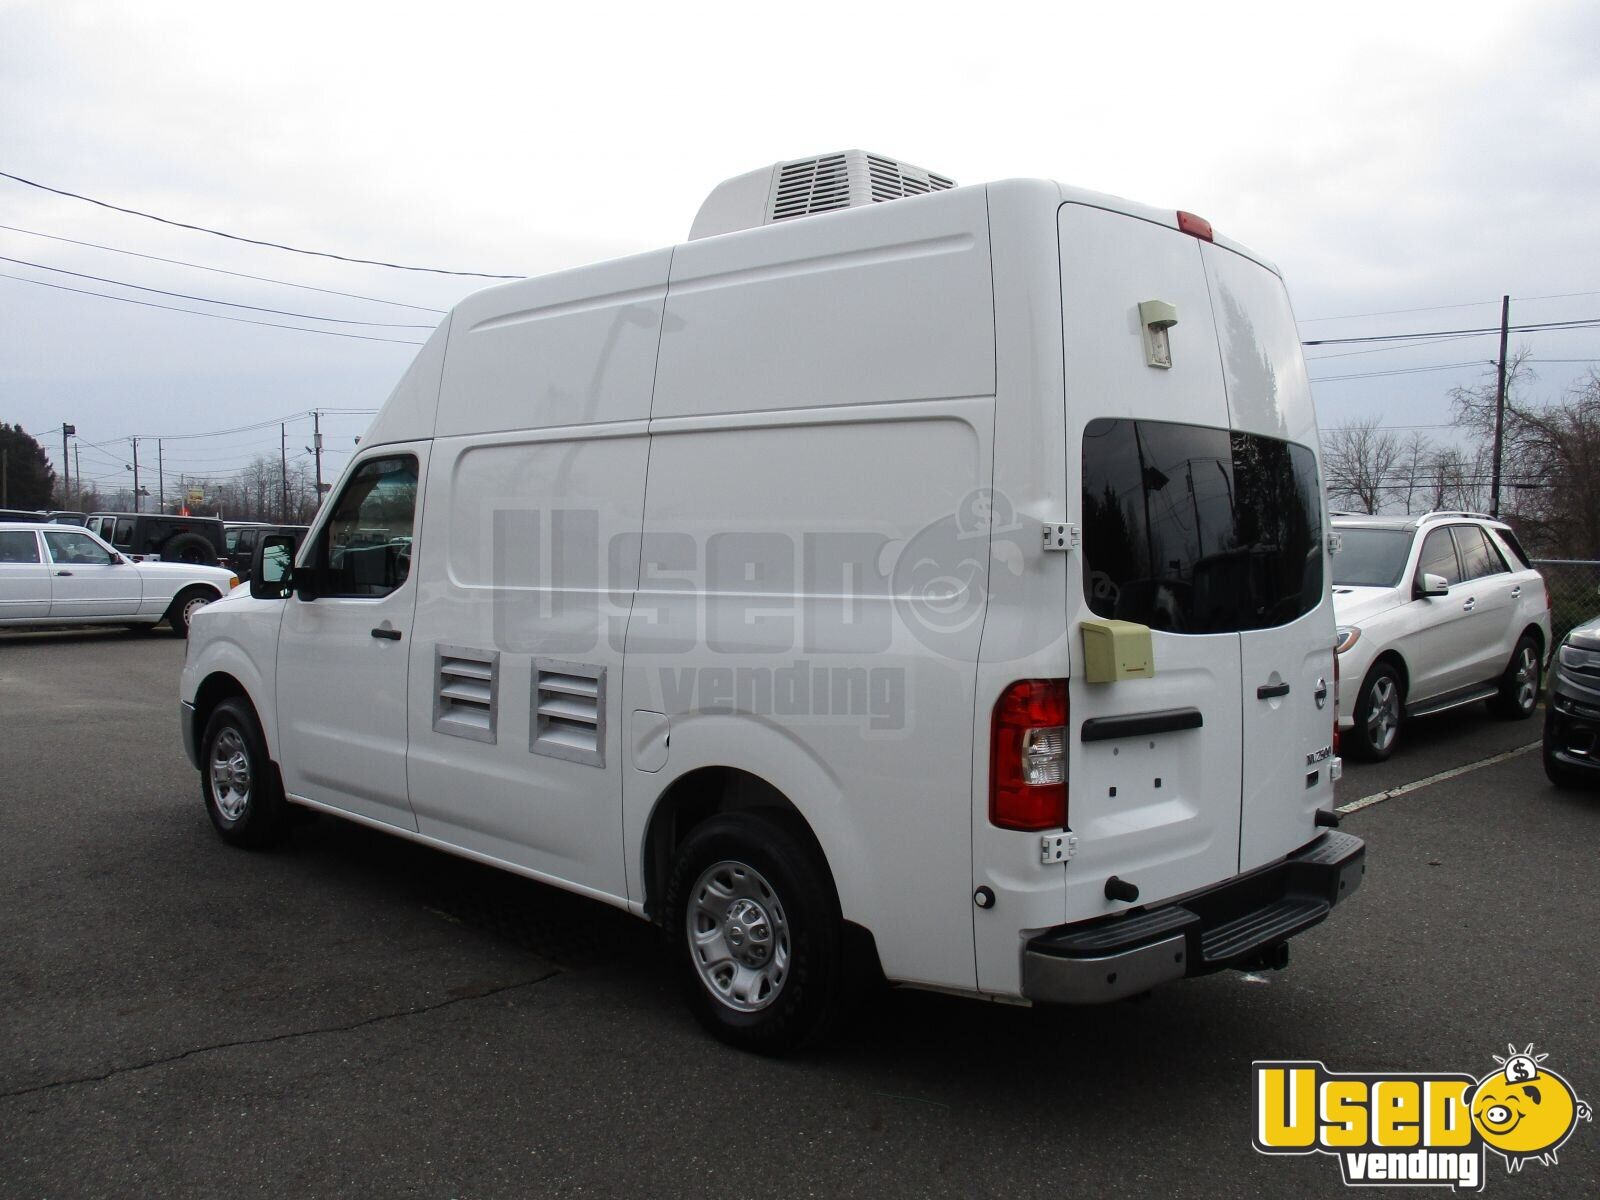 2013 Nissan Nv2500 All-purpose Food Truck Interior Lighting New Jersey Gas Engine for Sale - 6